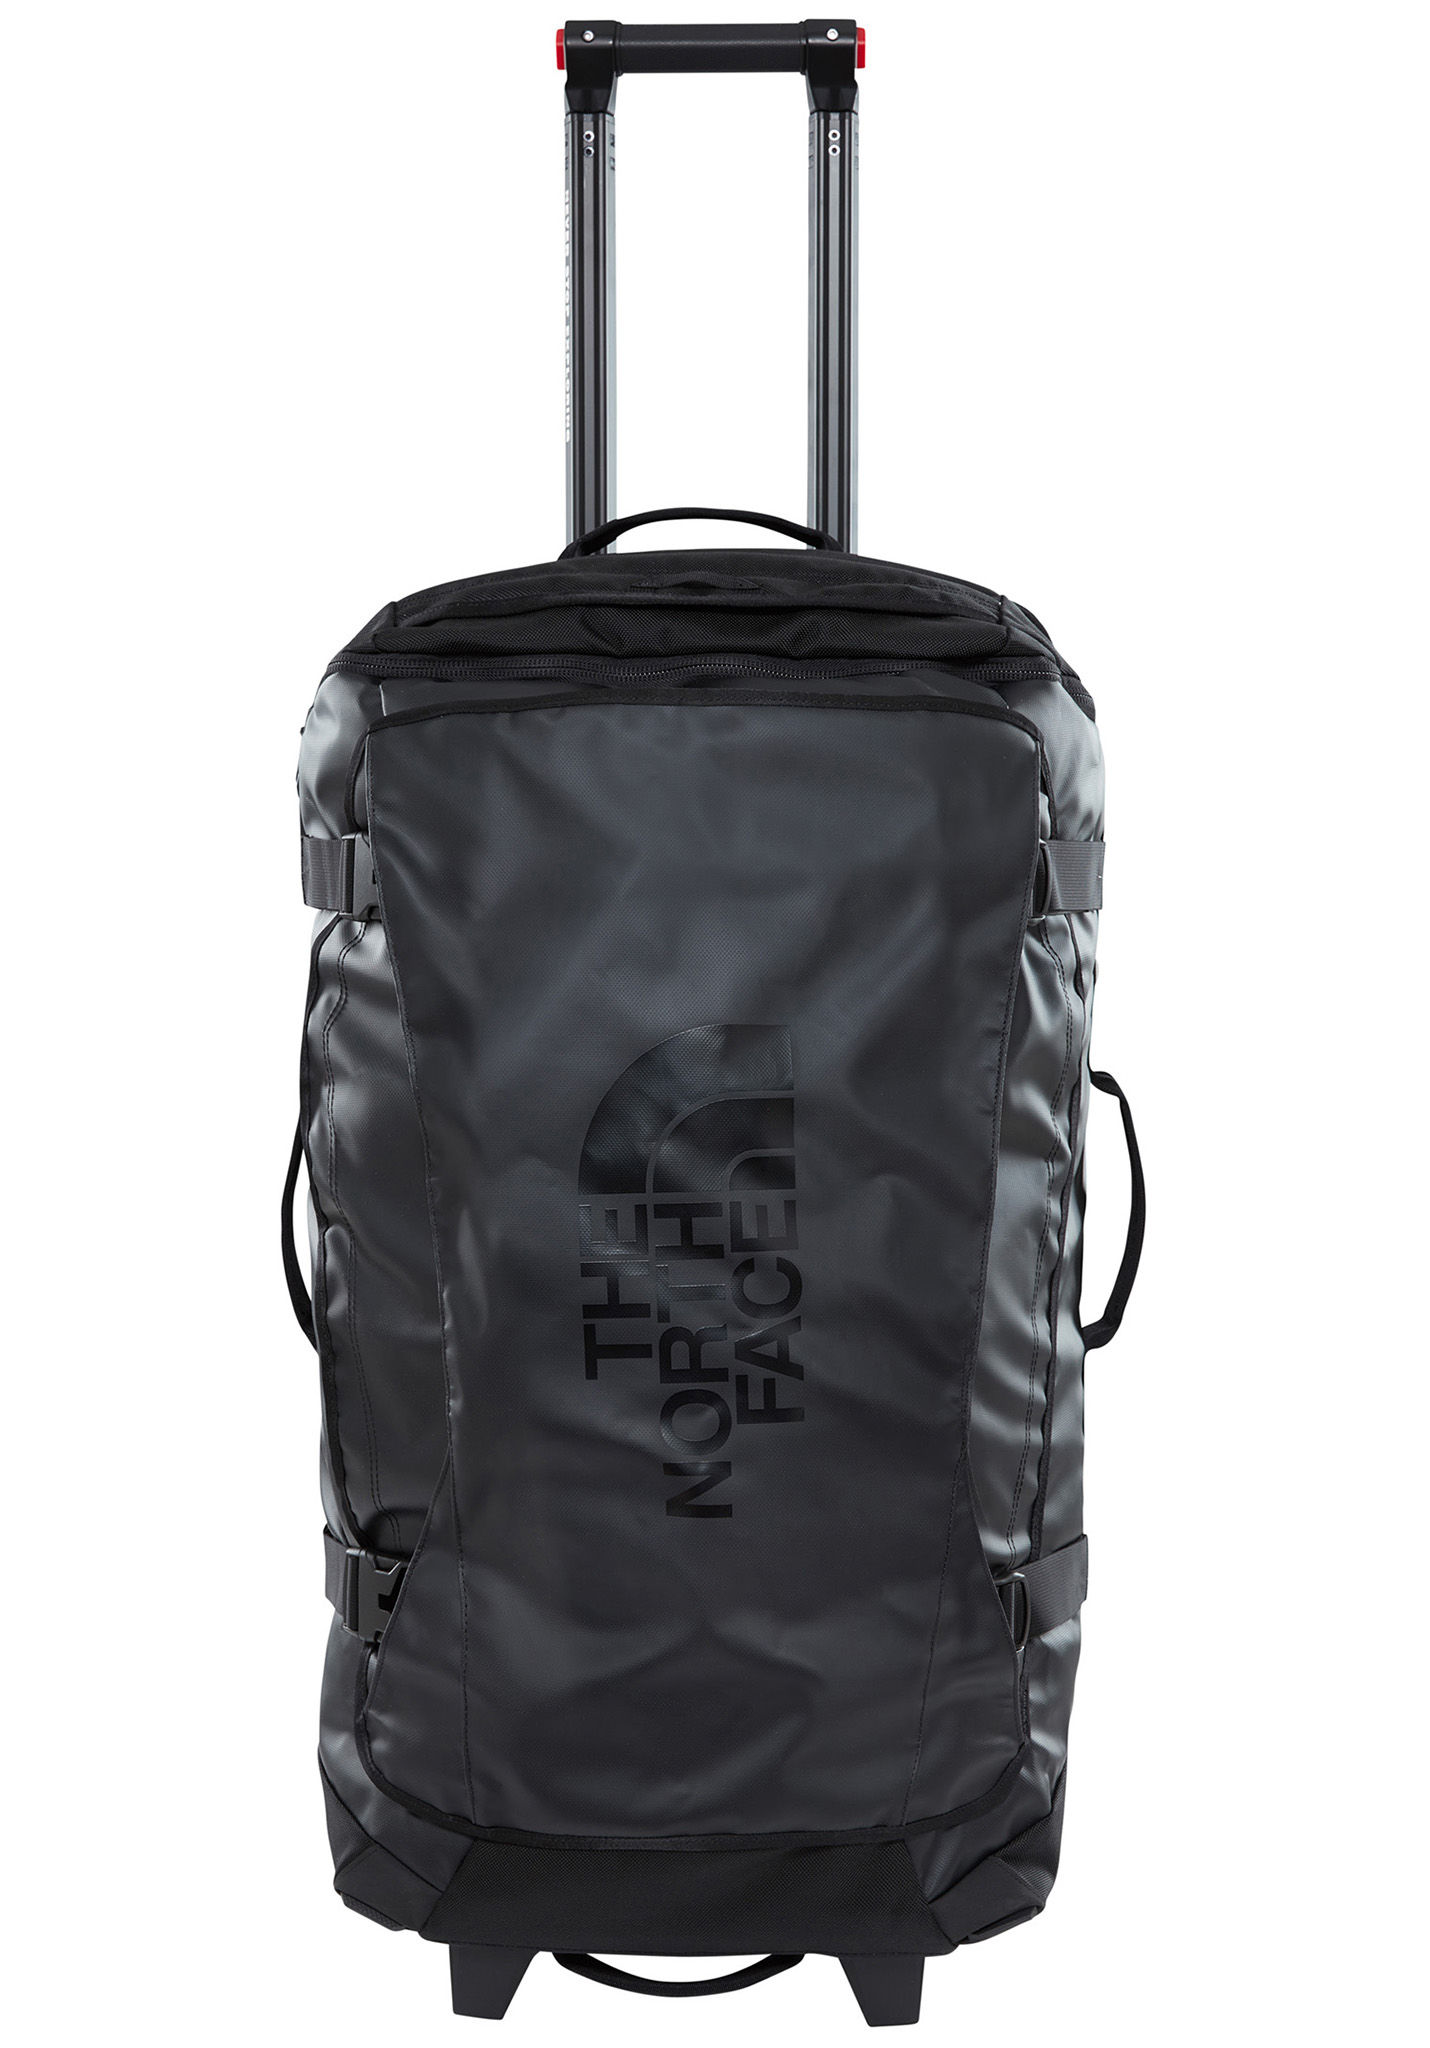 THE NORTH FACE Rolling Thunder 80L - Borsa da viaggio - Nero - Planet Sports 3e8f96c4313